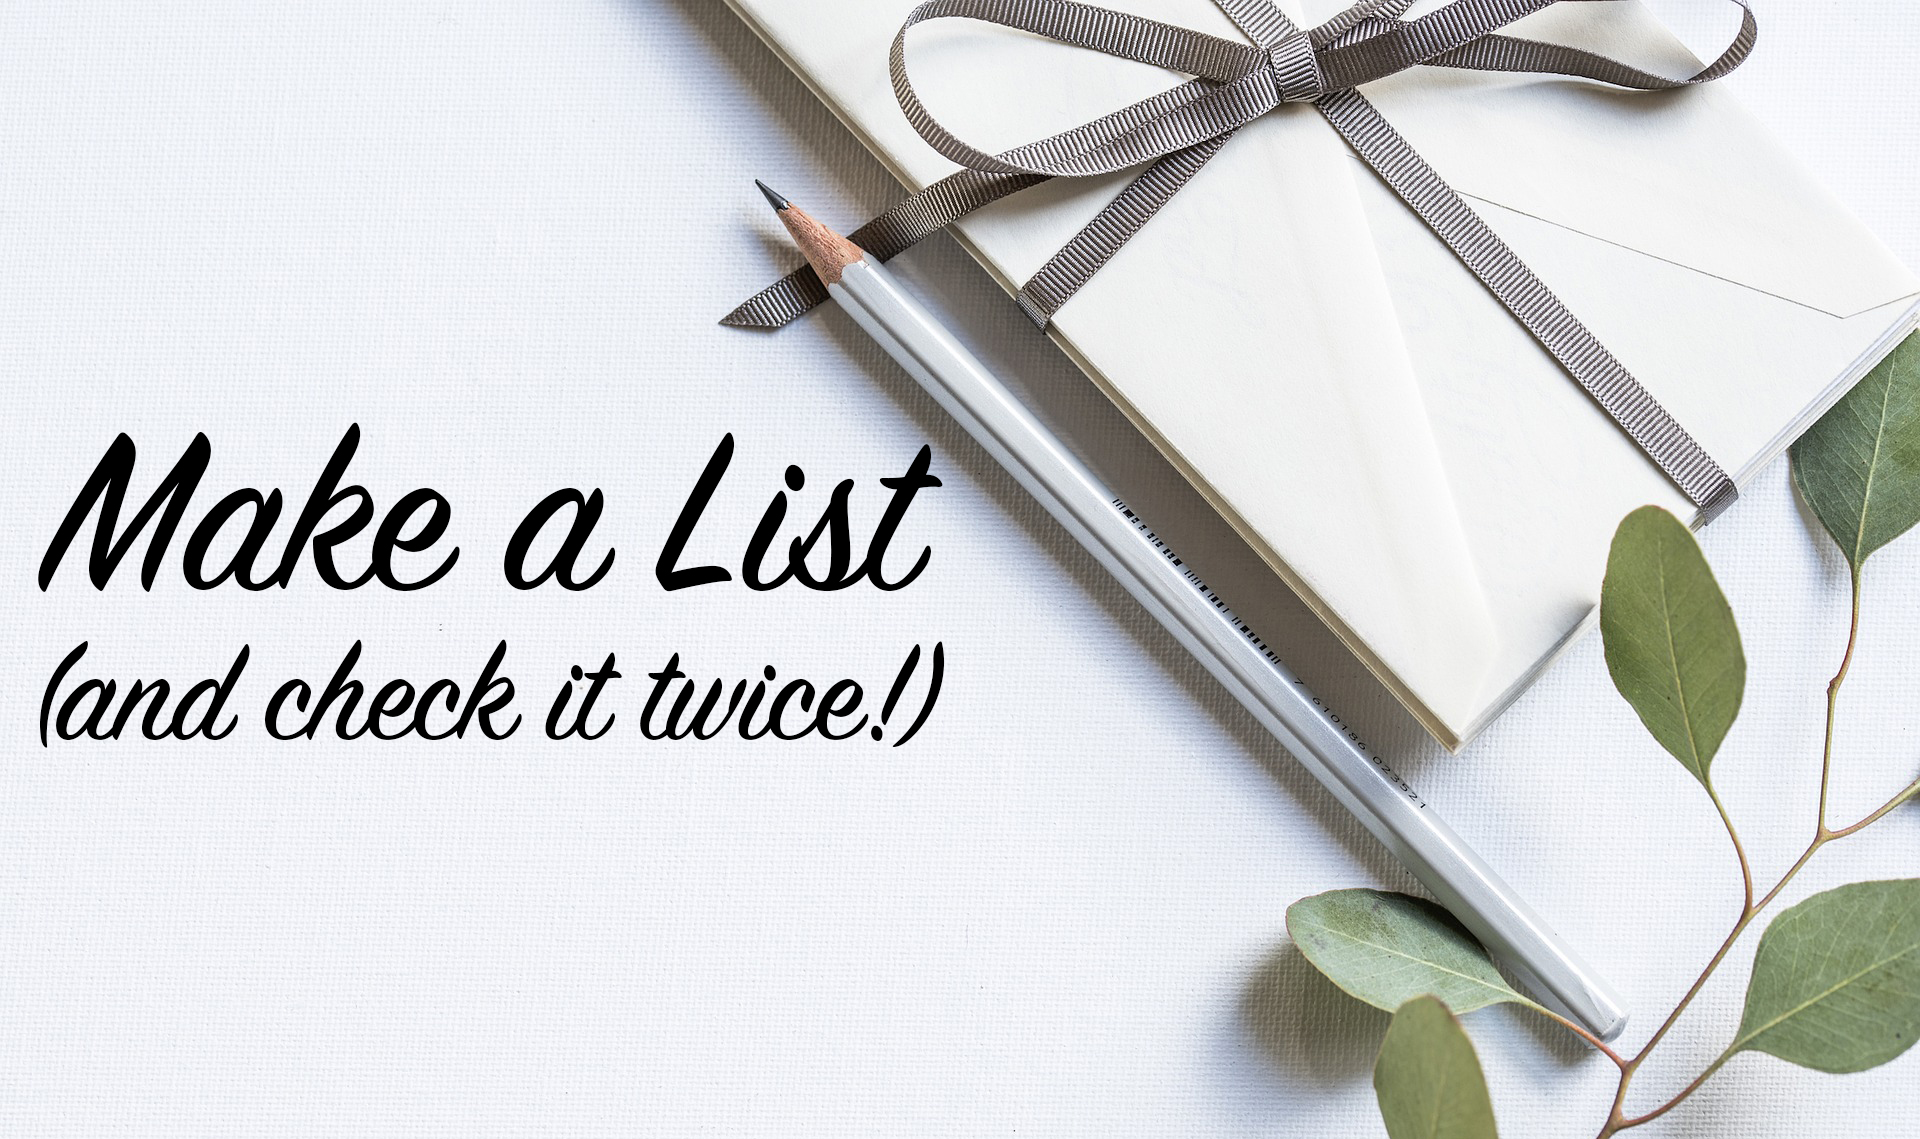 Make Your List (and check it twice)